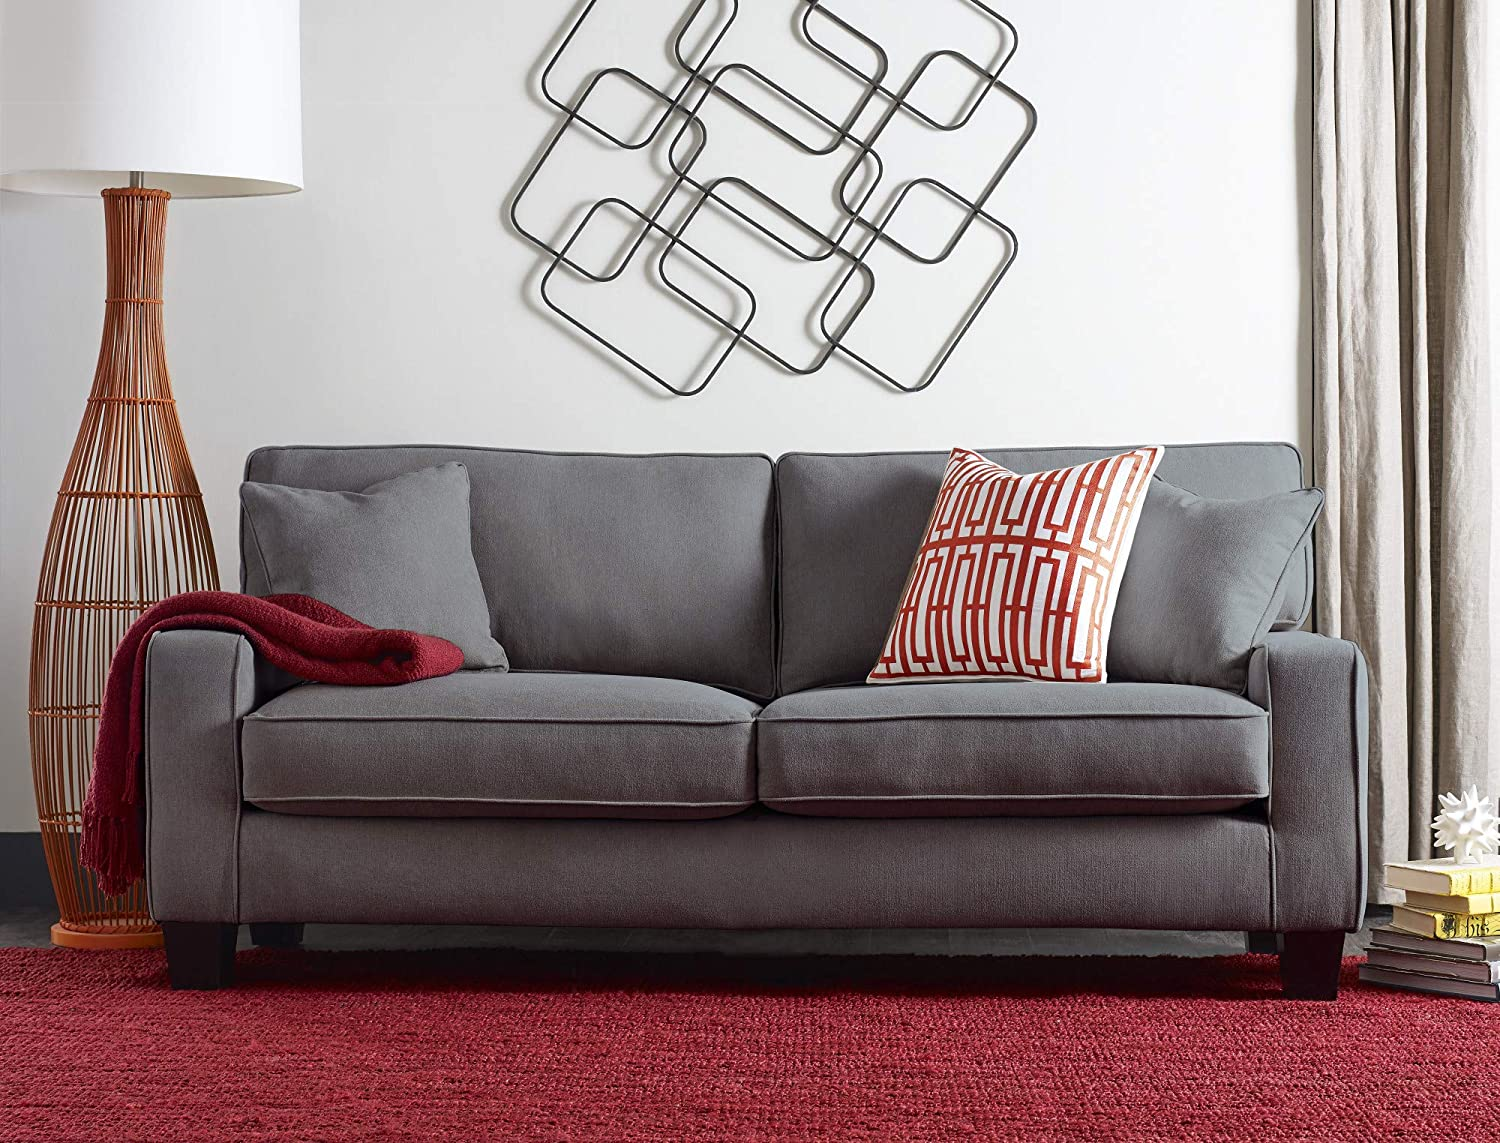 Pleasant Serta Deep Seating Palisades 78 Sofa In Essex Gray Onthecornerstone Fun Painted Chair Ideas Images Onthecornerstoneorg